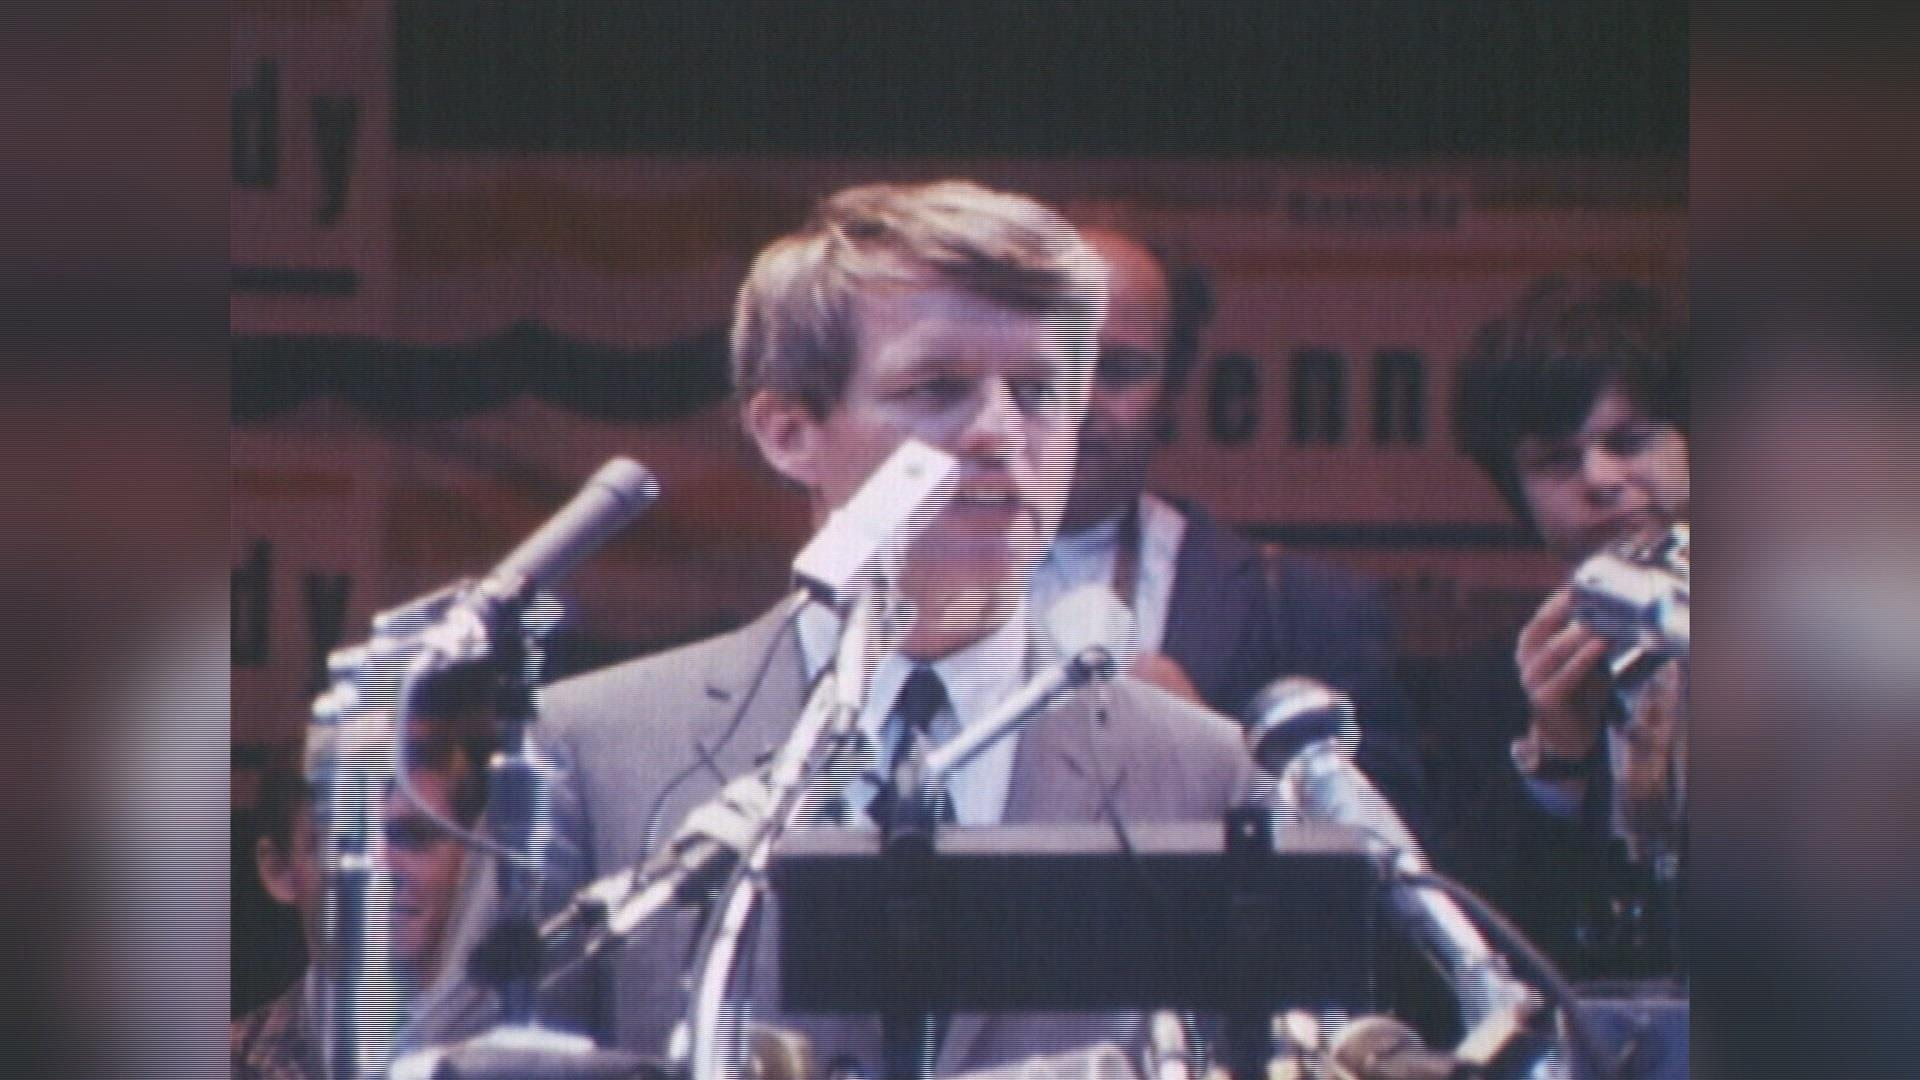 RFK: 'The choice really is up to you'